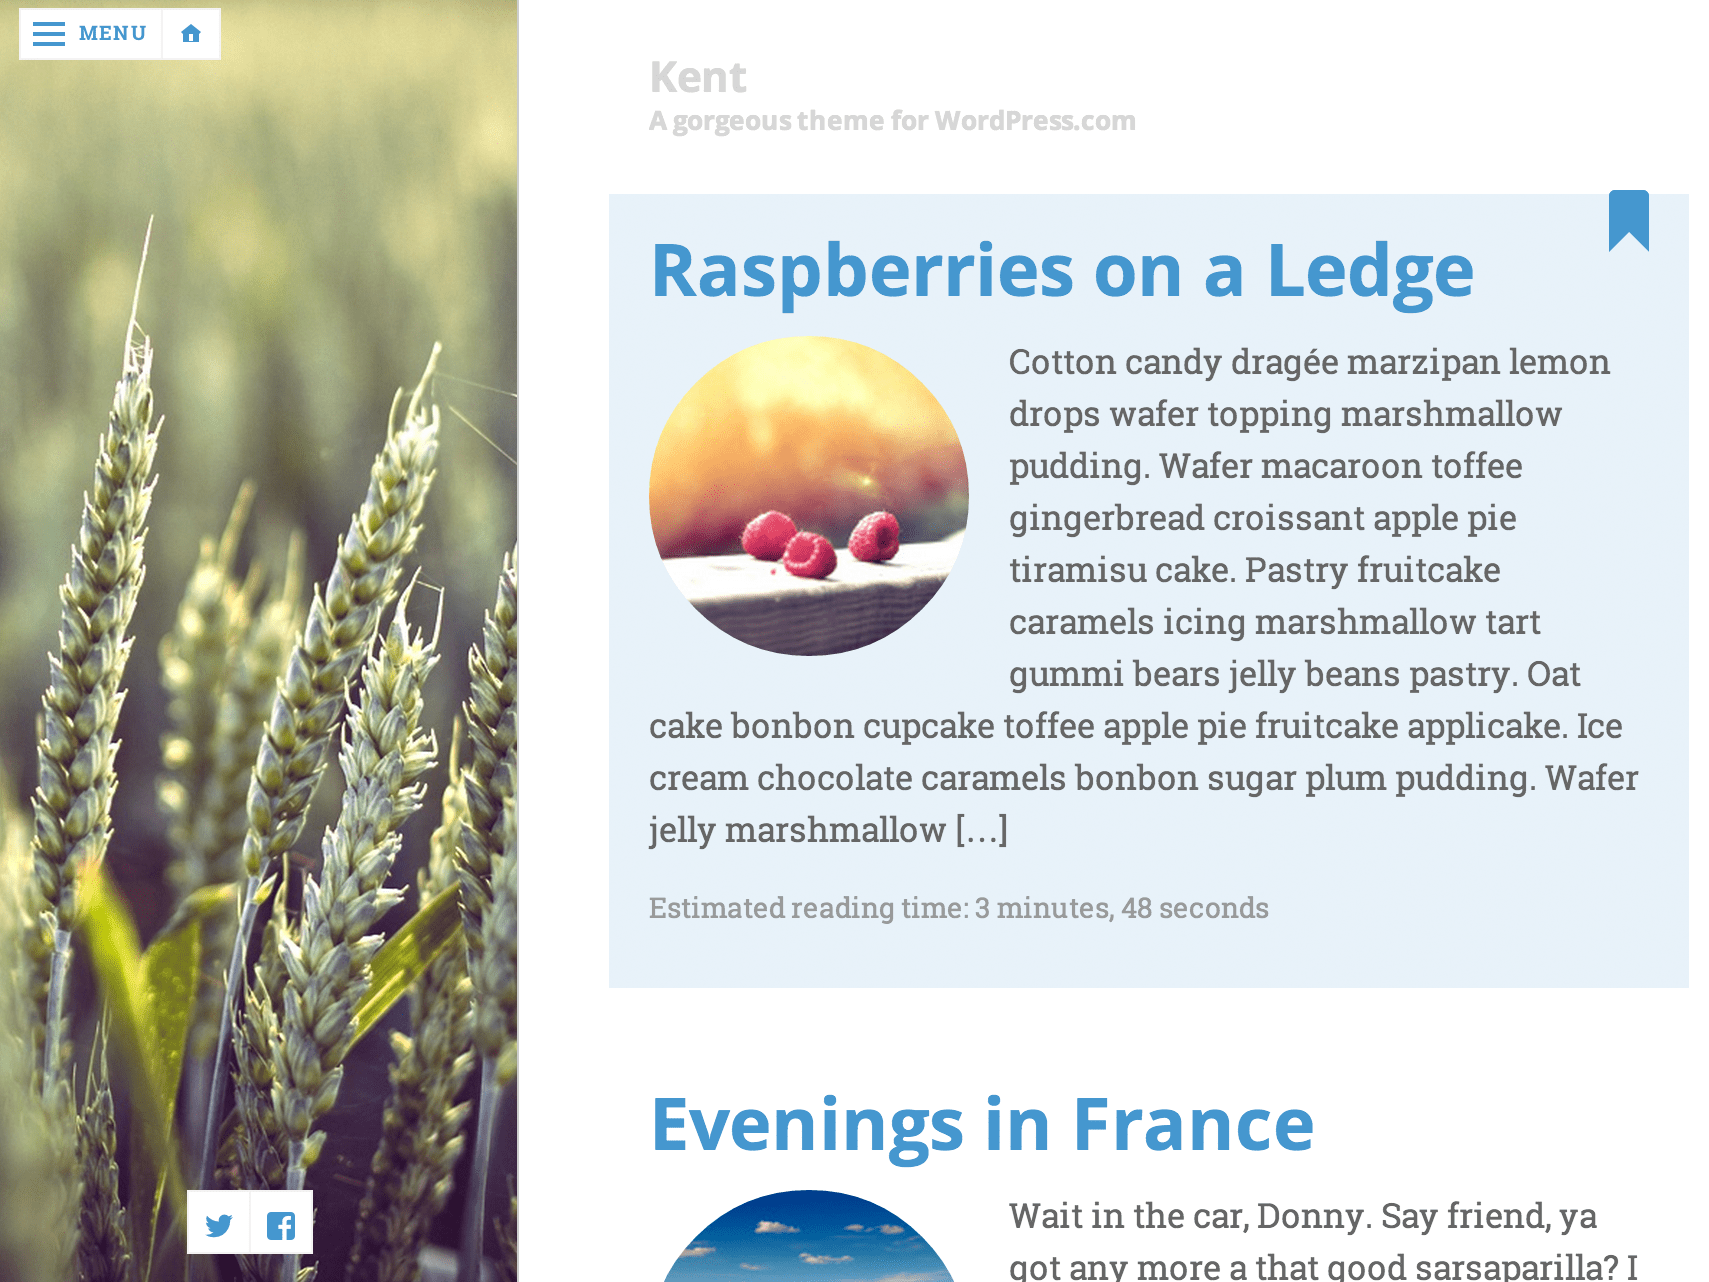 Screenshot of the Kent theme